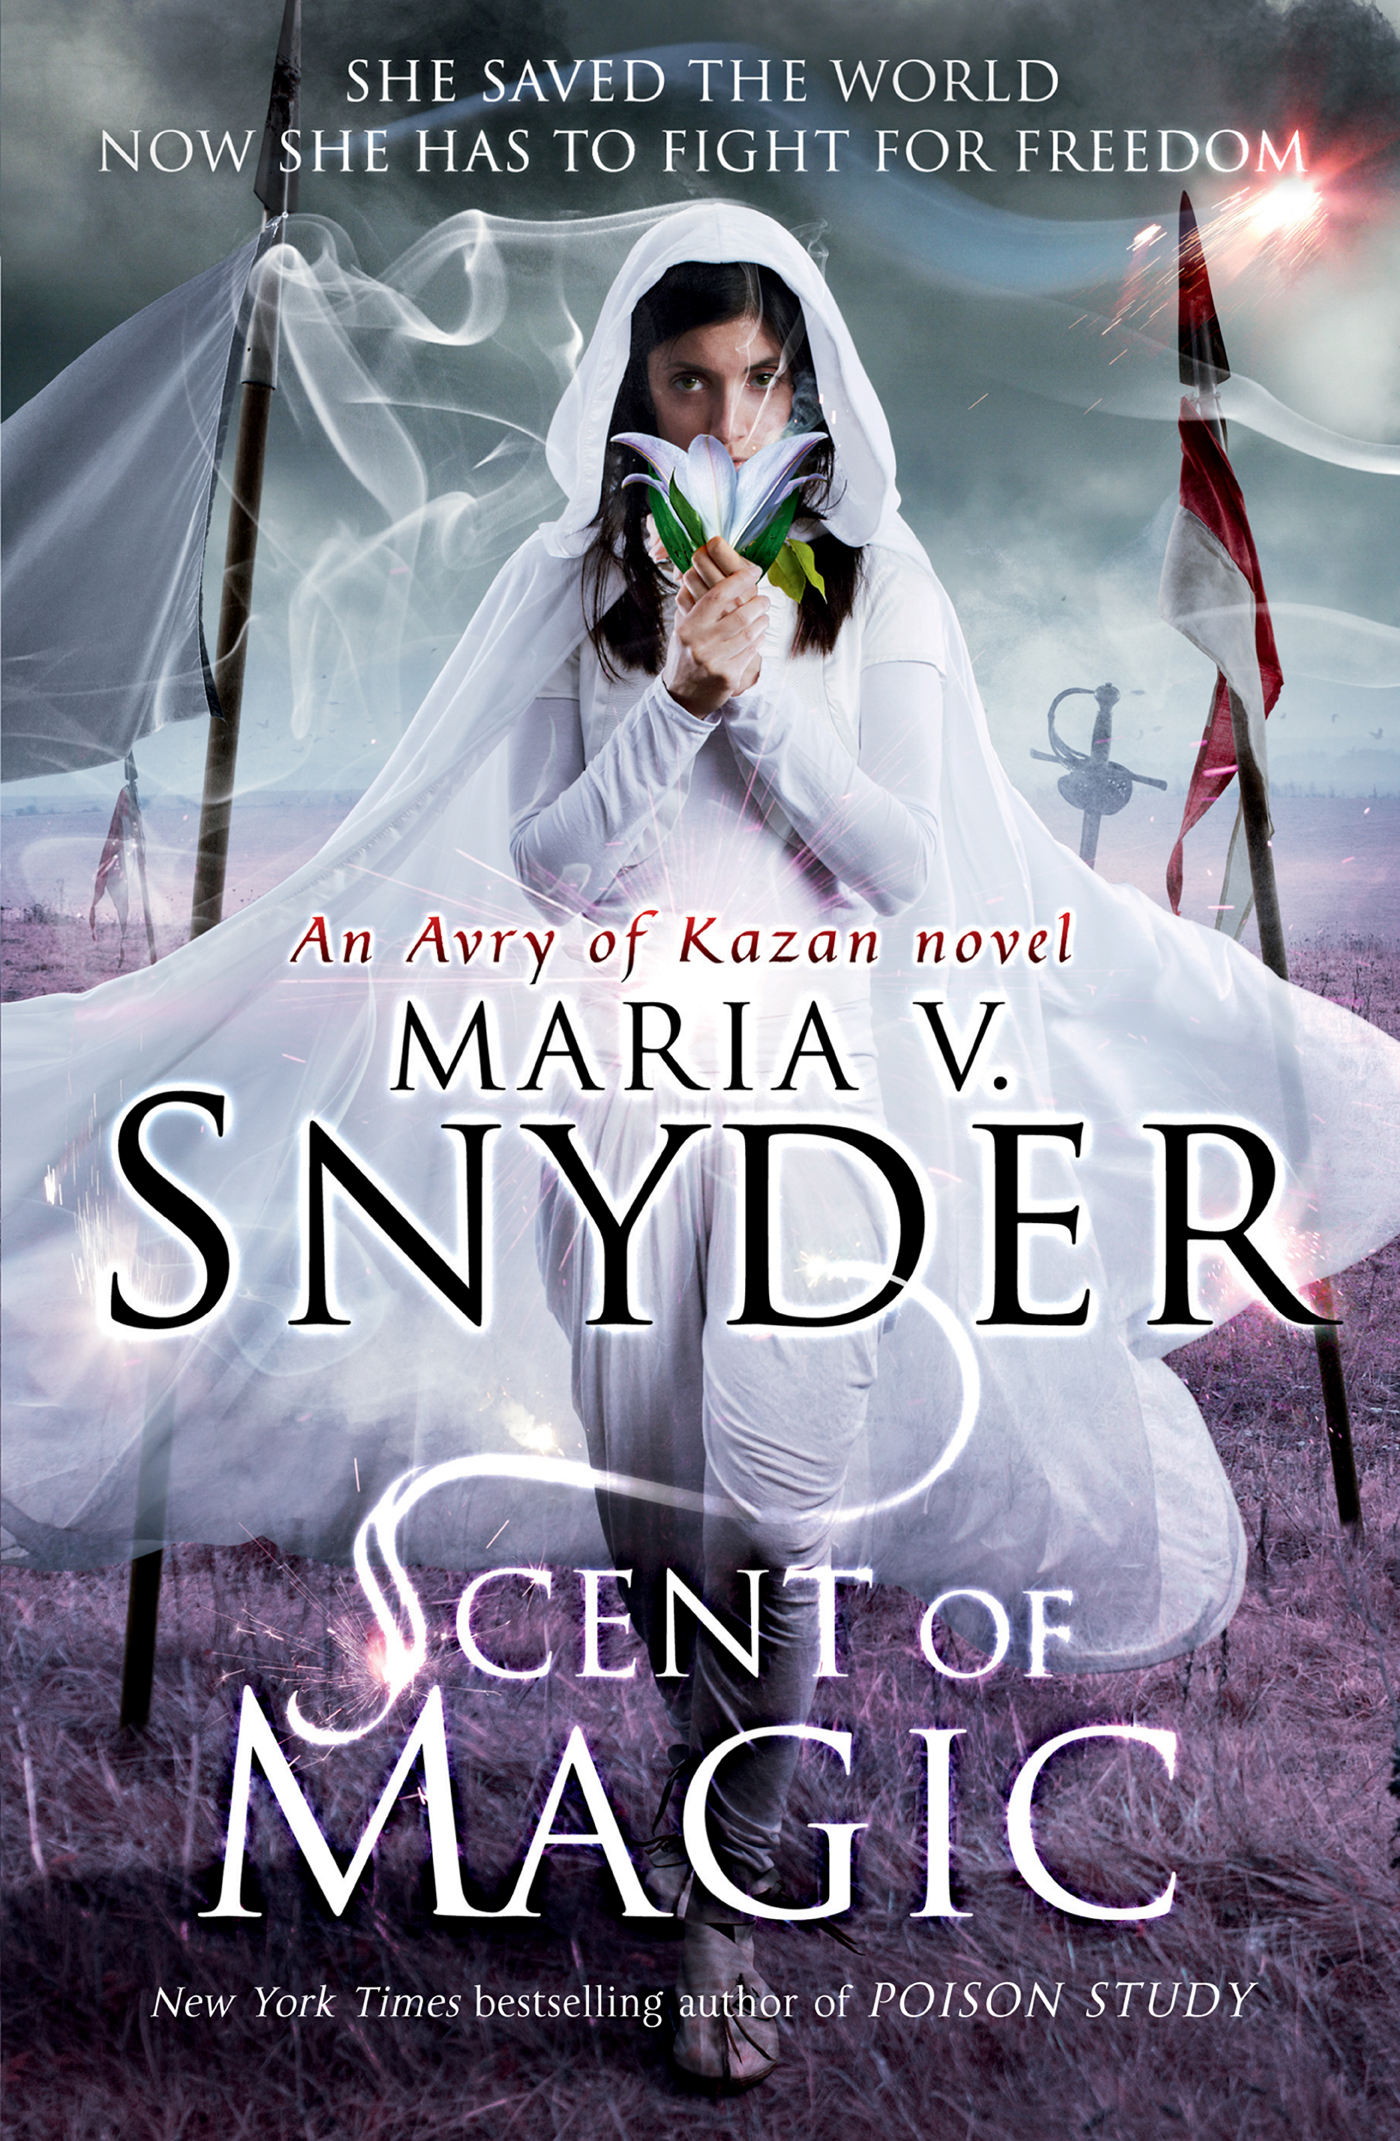 Scent of Magic (An Avry of Kazan novel - Book 2)